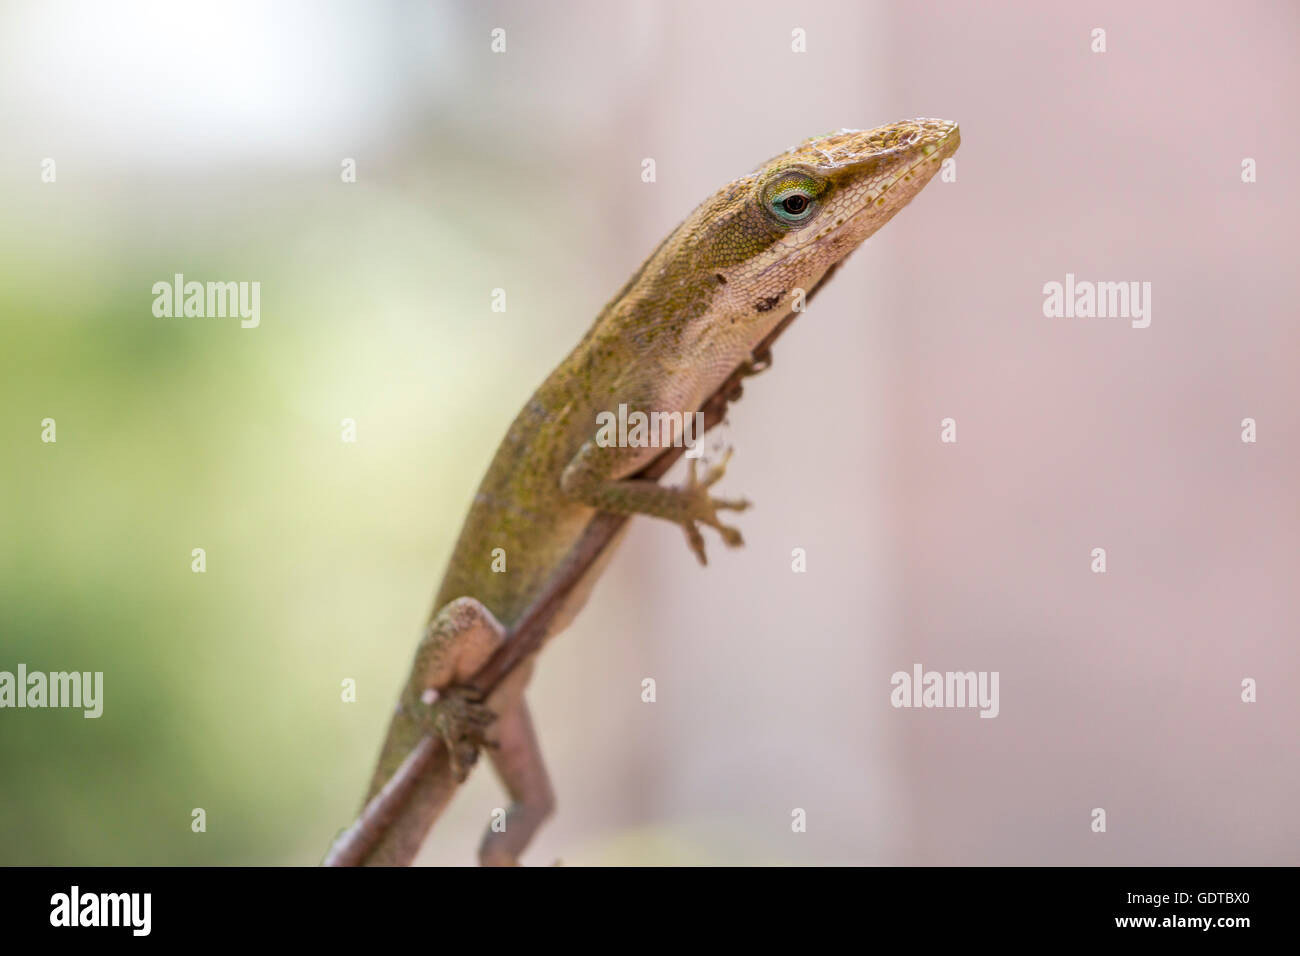 A green anole holds onto a twig looking down Stock Photo